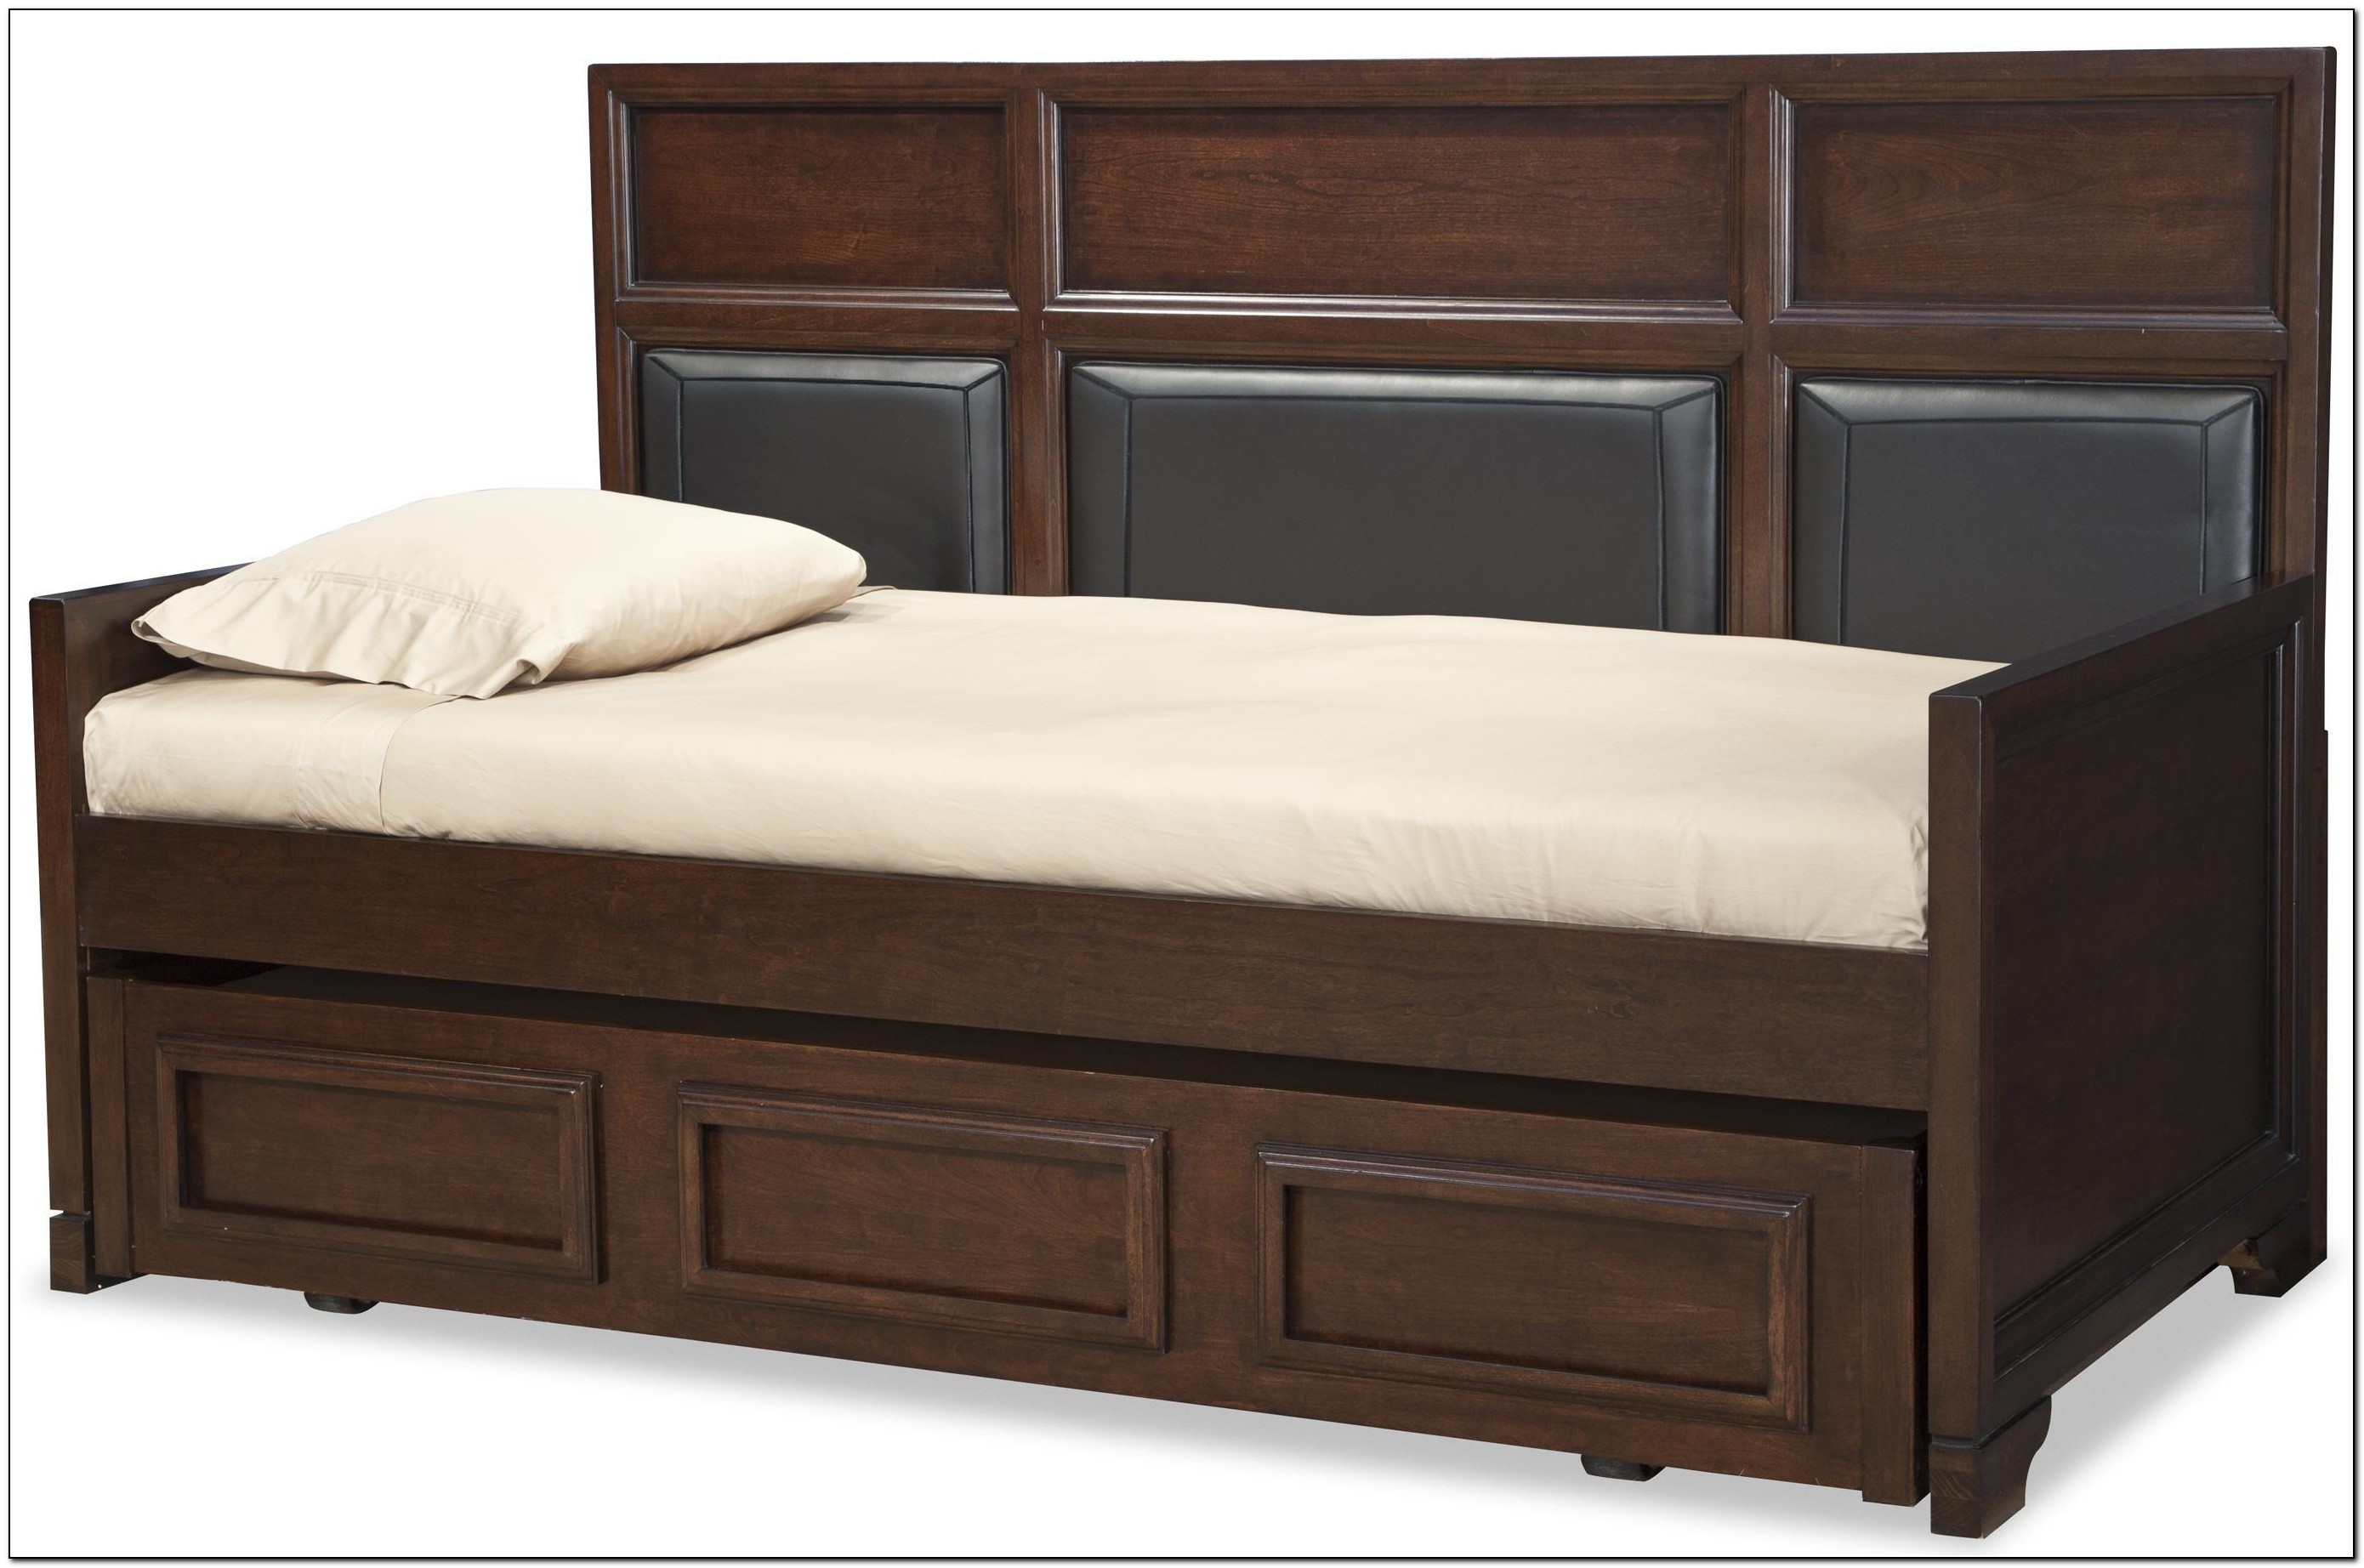 Full size trundle bed with storage beds home design for Beds with trundle